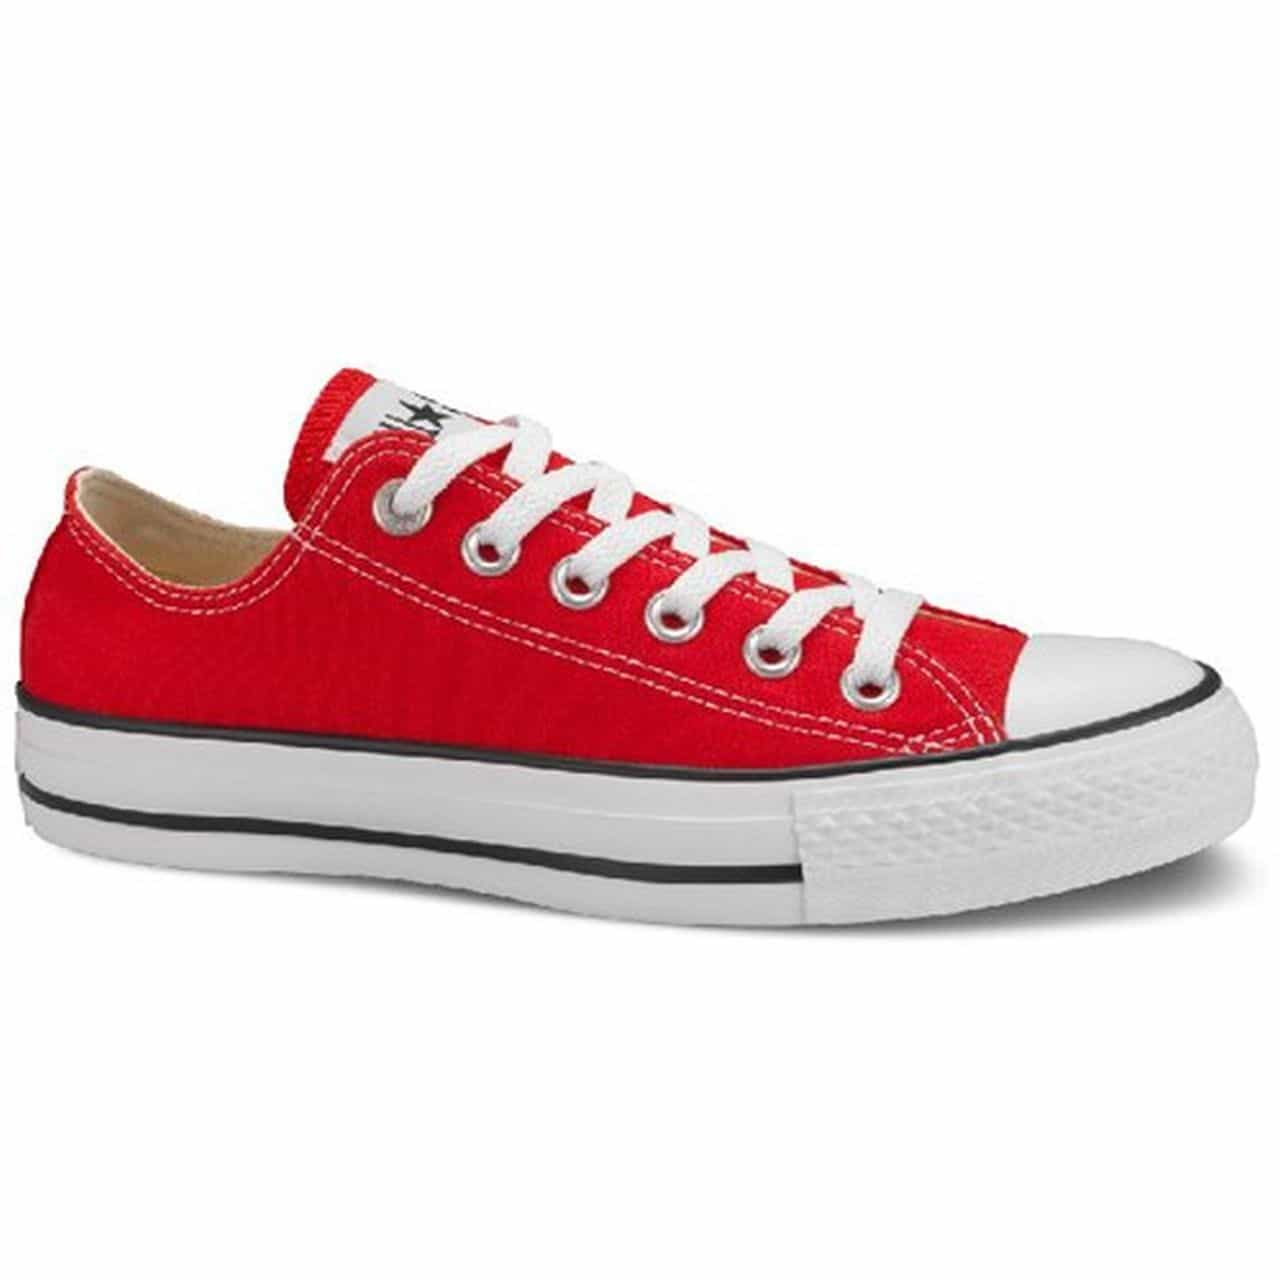 TENISI CONVERSE ALL STAR OX RED - M9696C 1